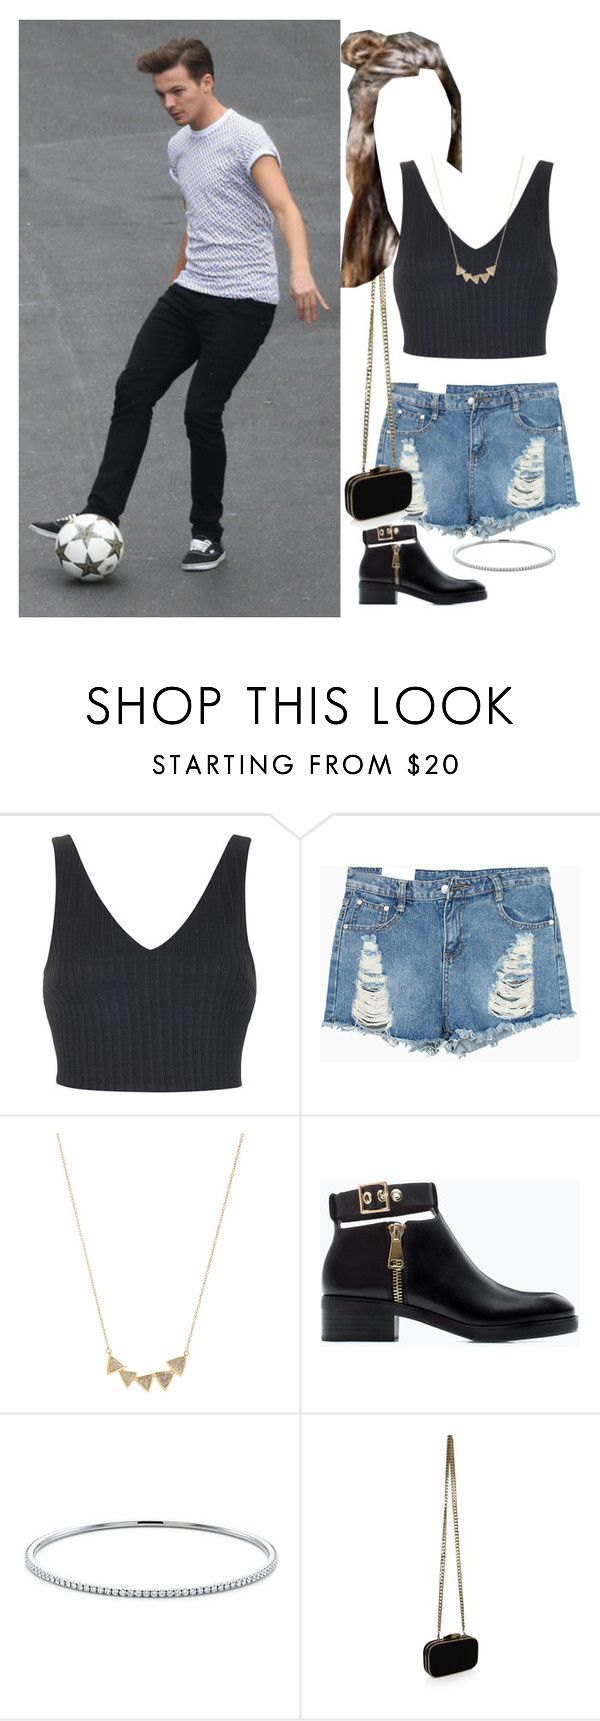 """""""E-arena with your boyfriend louis"""" by onedirectionnhllz ❤ liked on Polyvore featuring Topshop, Jennifer Meyer Jewelry, Zara, Tiffany & Co. and Carvela Kurt Geiger"""